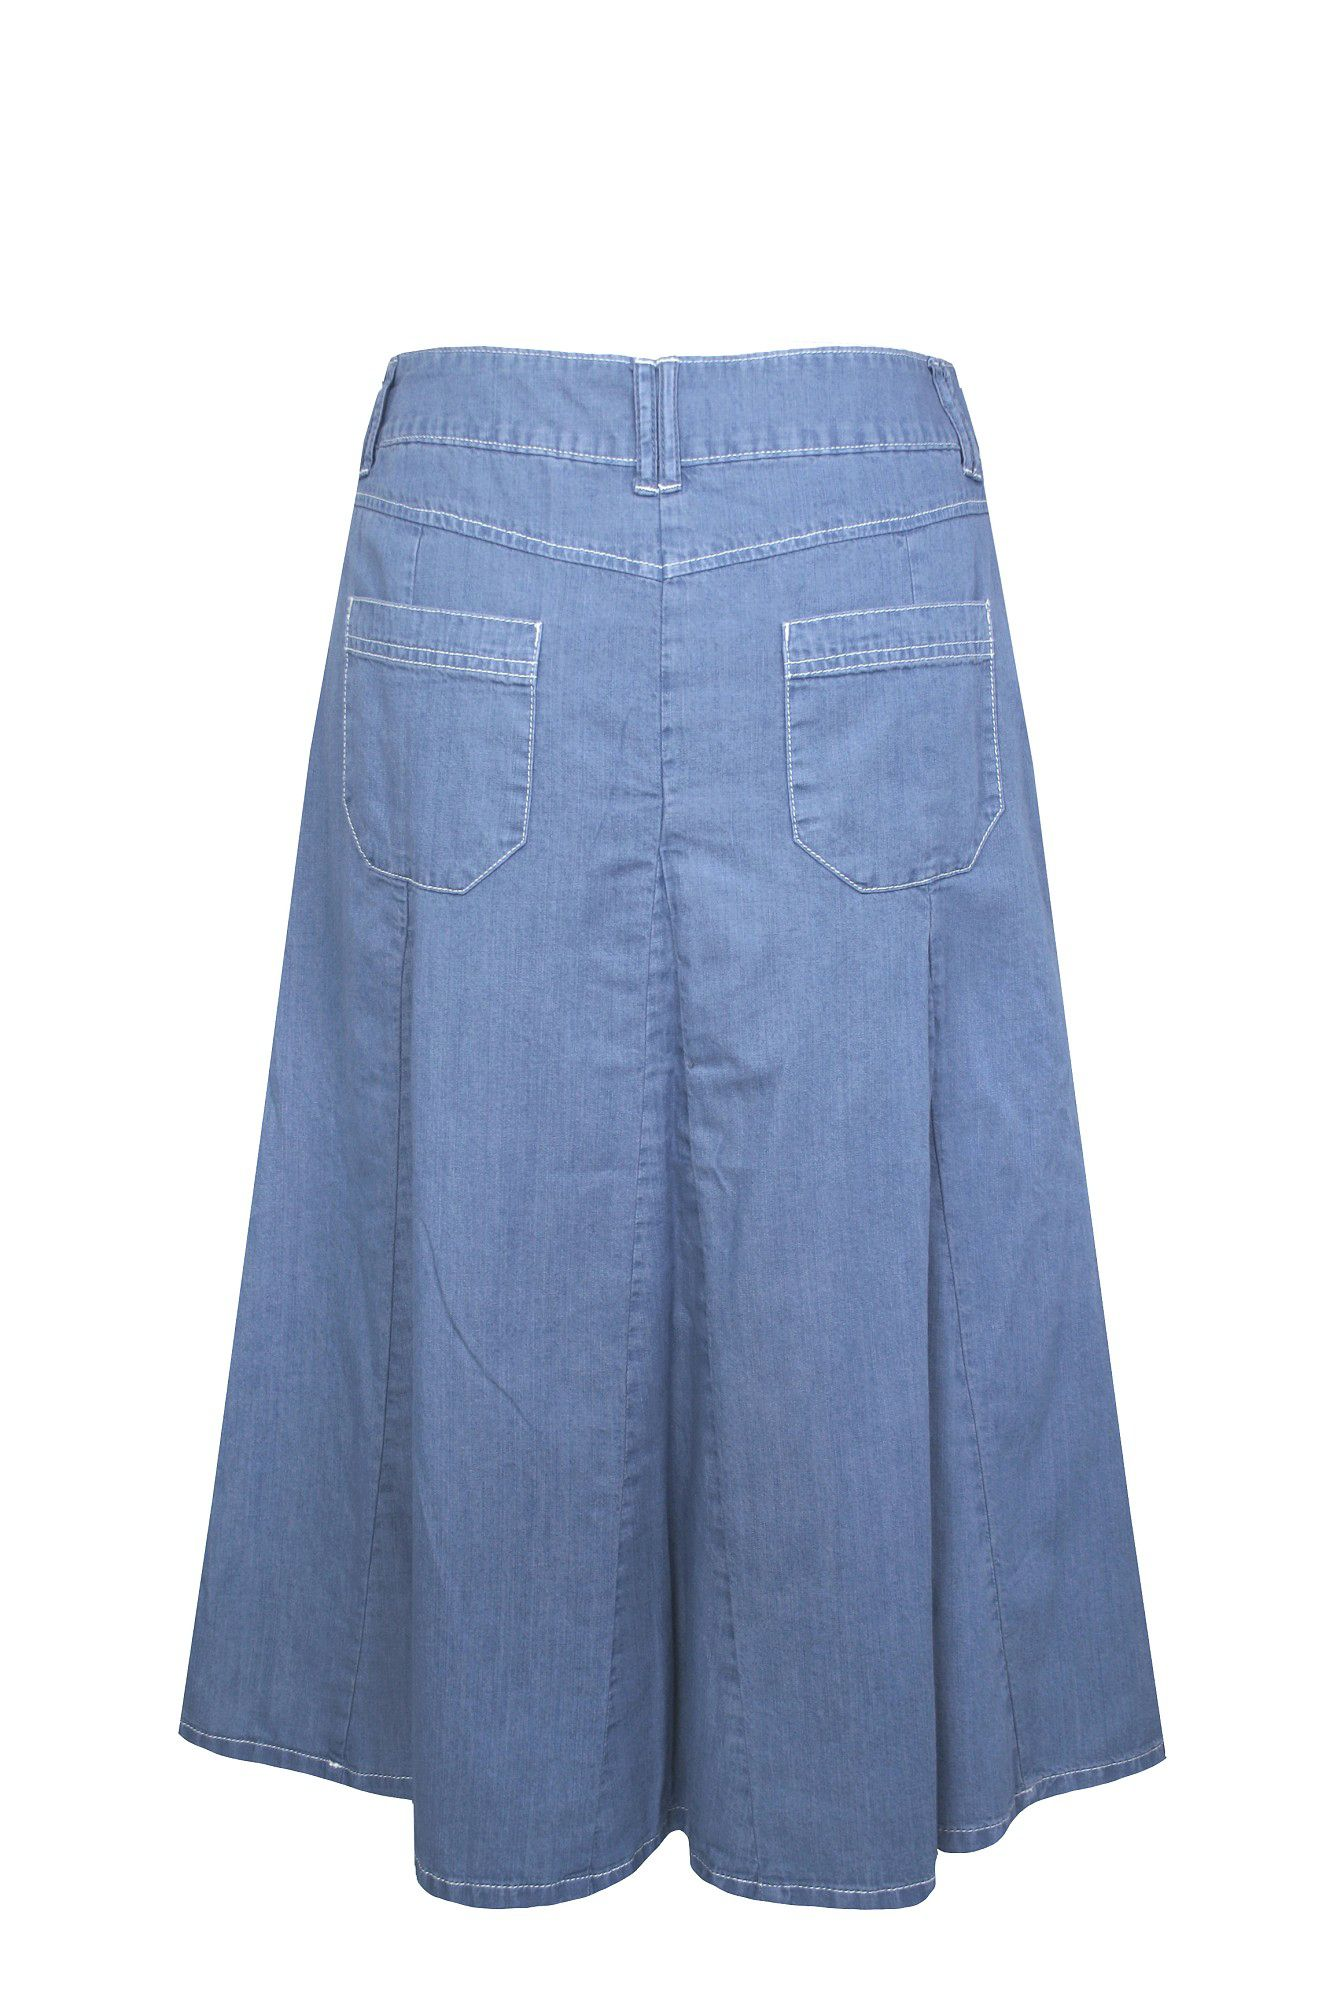 Dash Lightweight Denim Skirt in Blue | Lyst